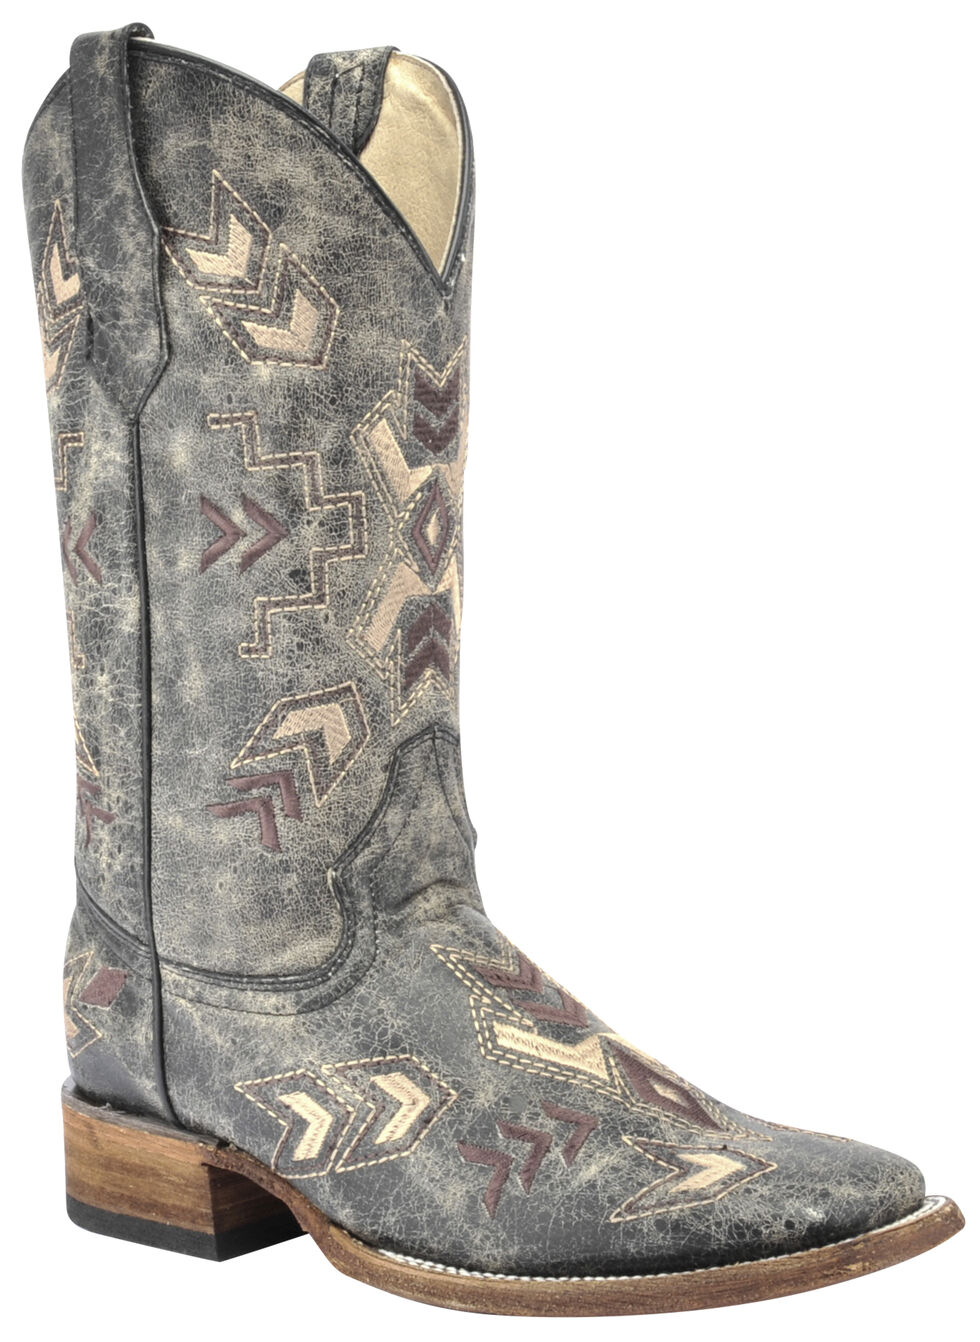 Circle G Distressed Black Arrowhead Cowgirl Boots - Square Toe, Black, hi-res